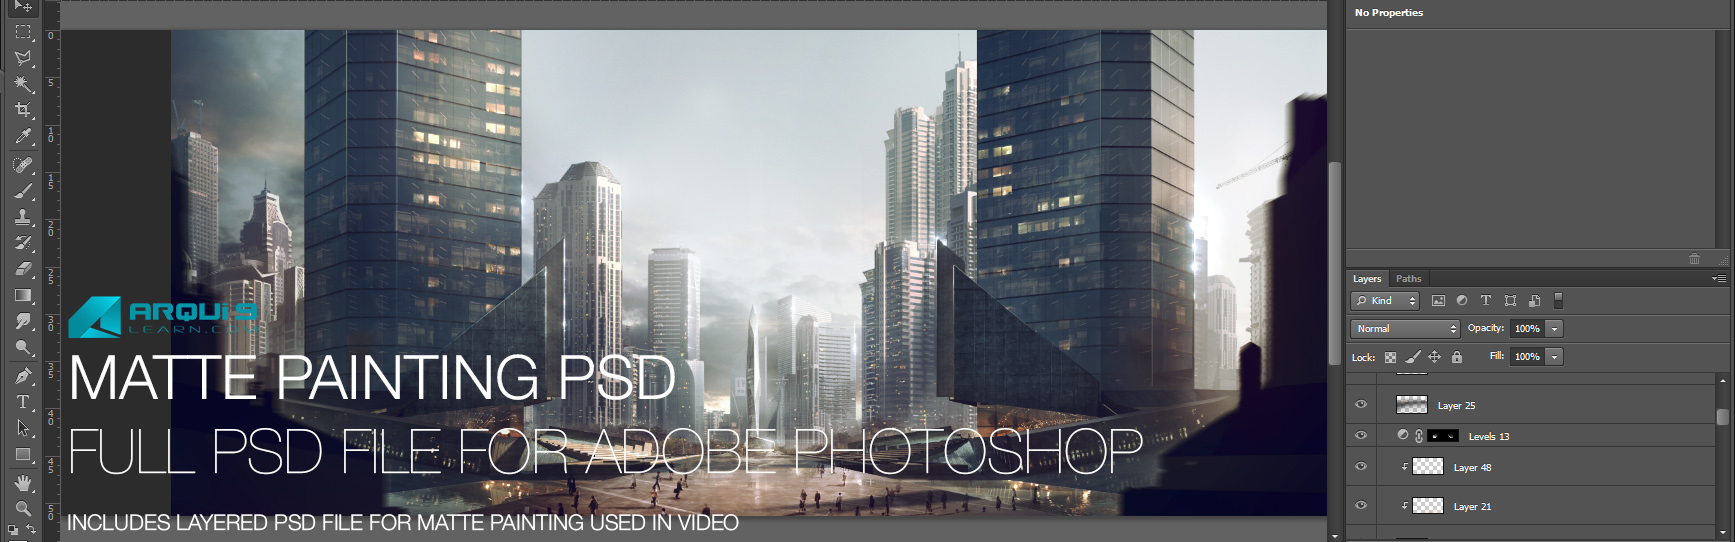 Click to buy the PSD Photoshop file and view the various steps below within it.